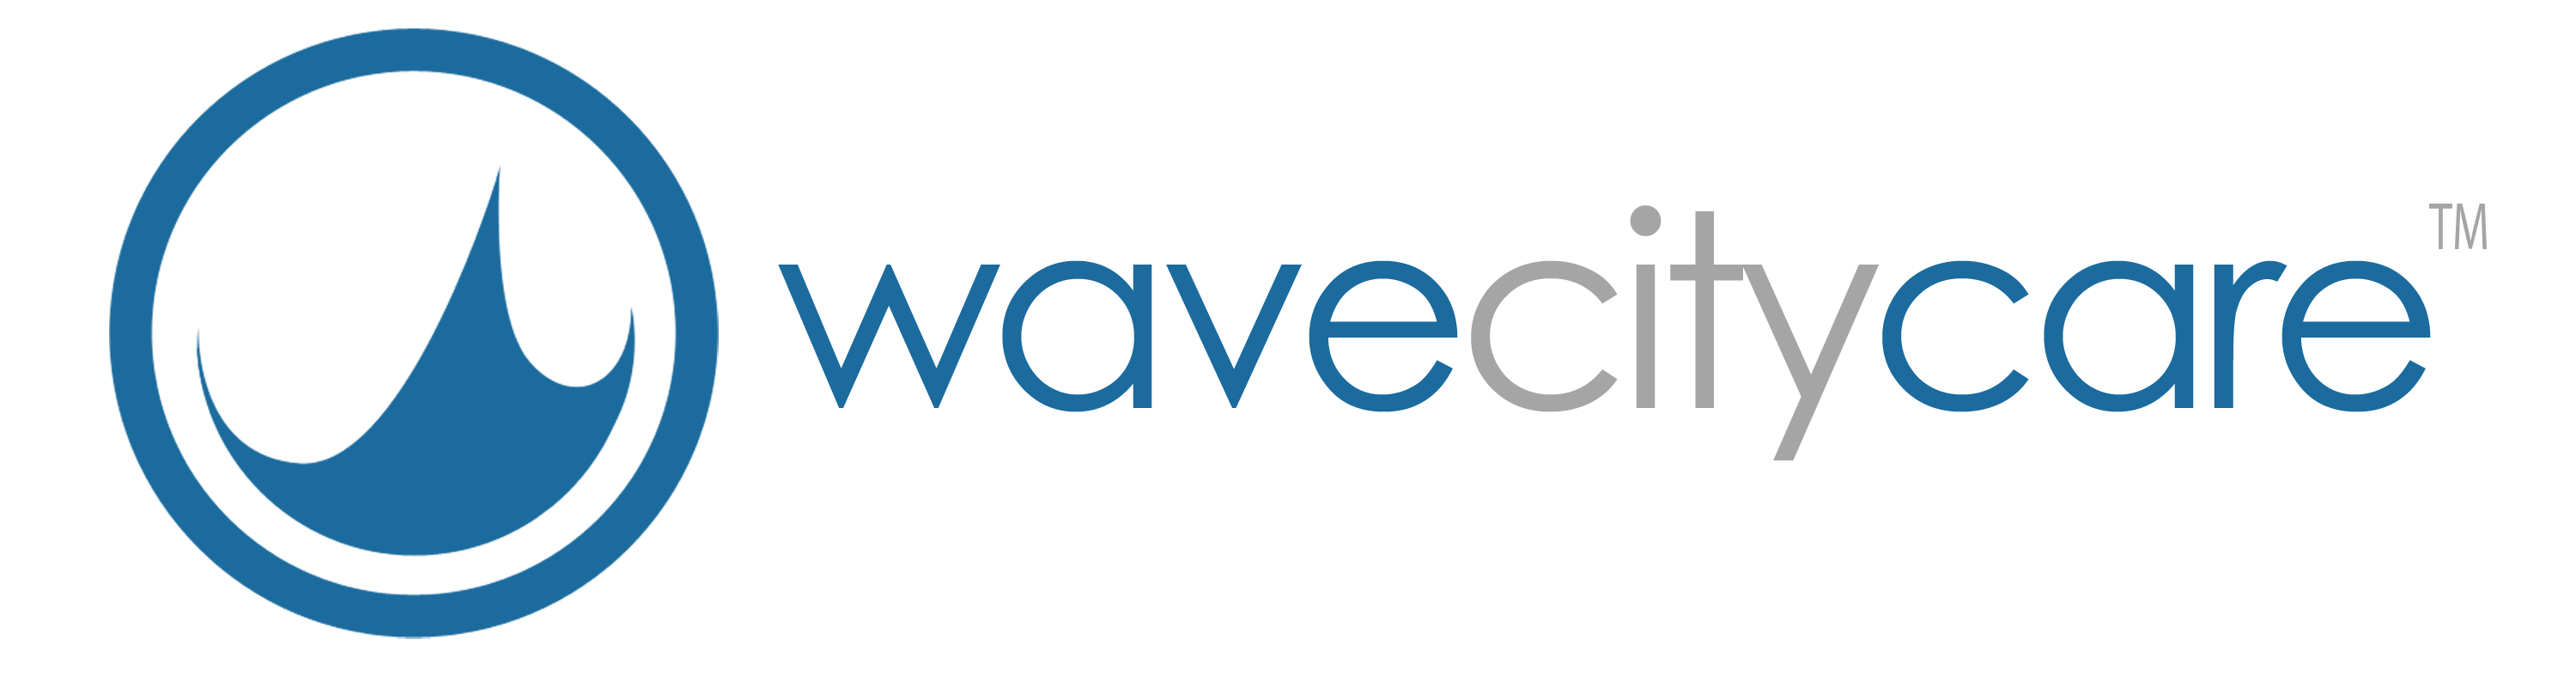 Wave City Care